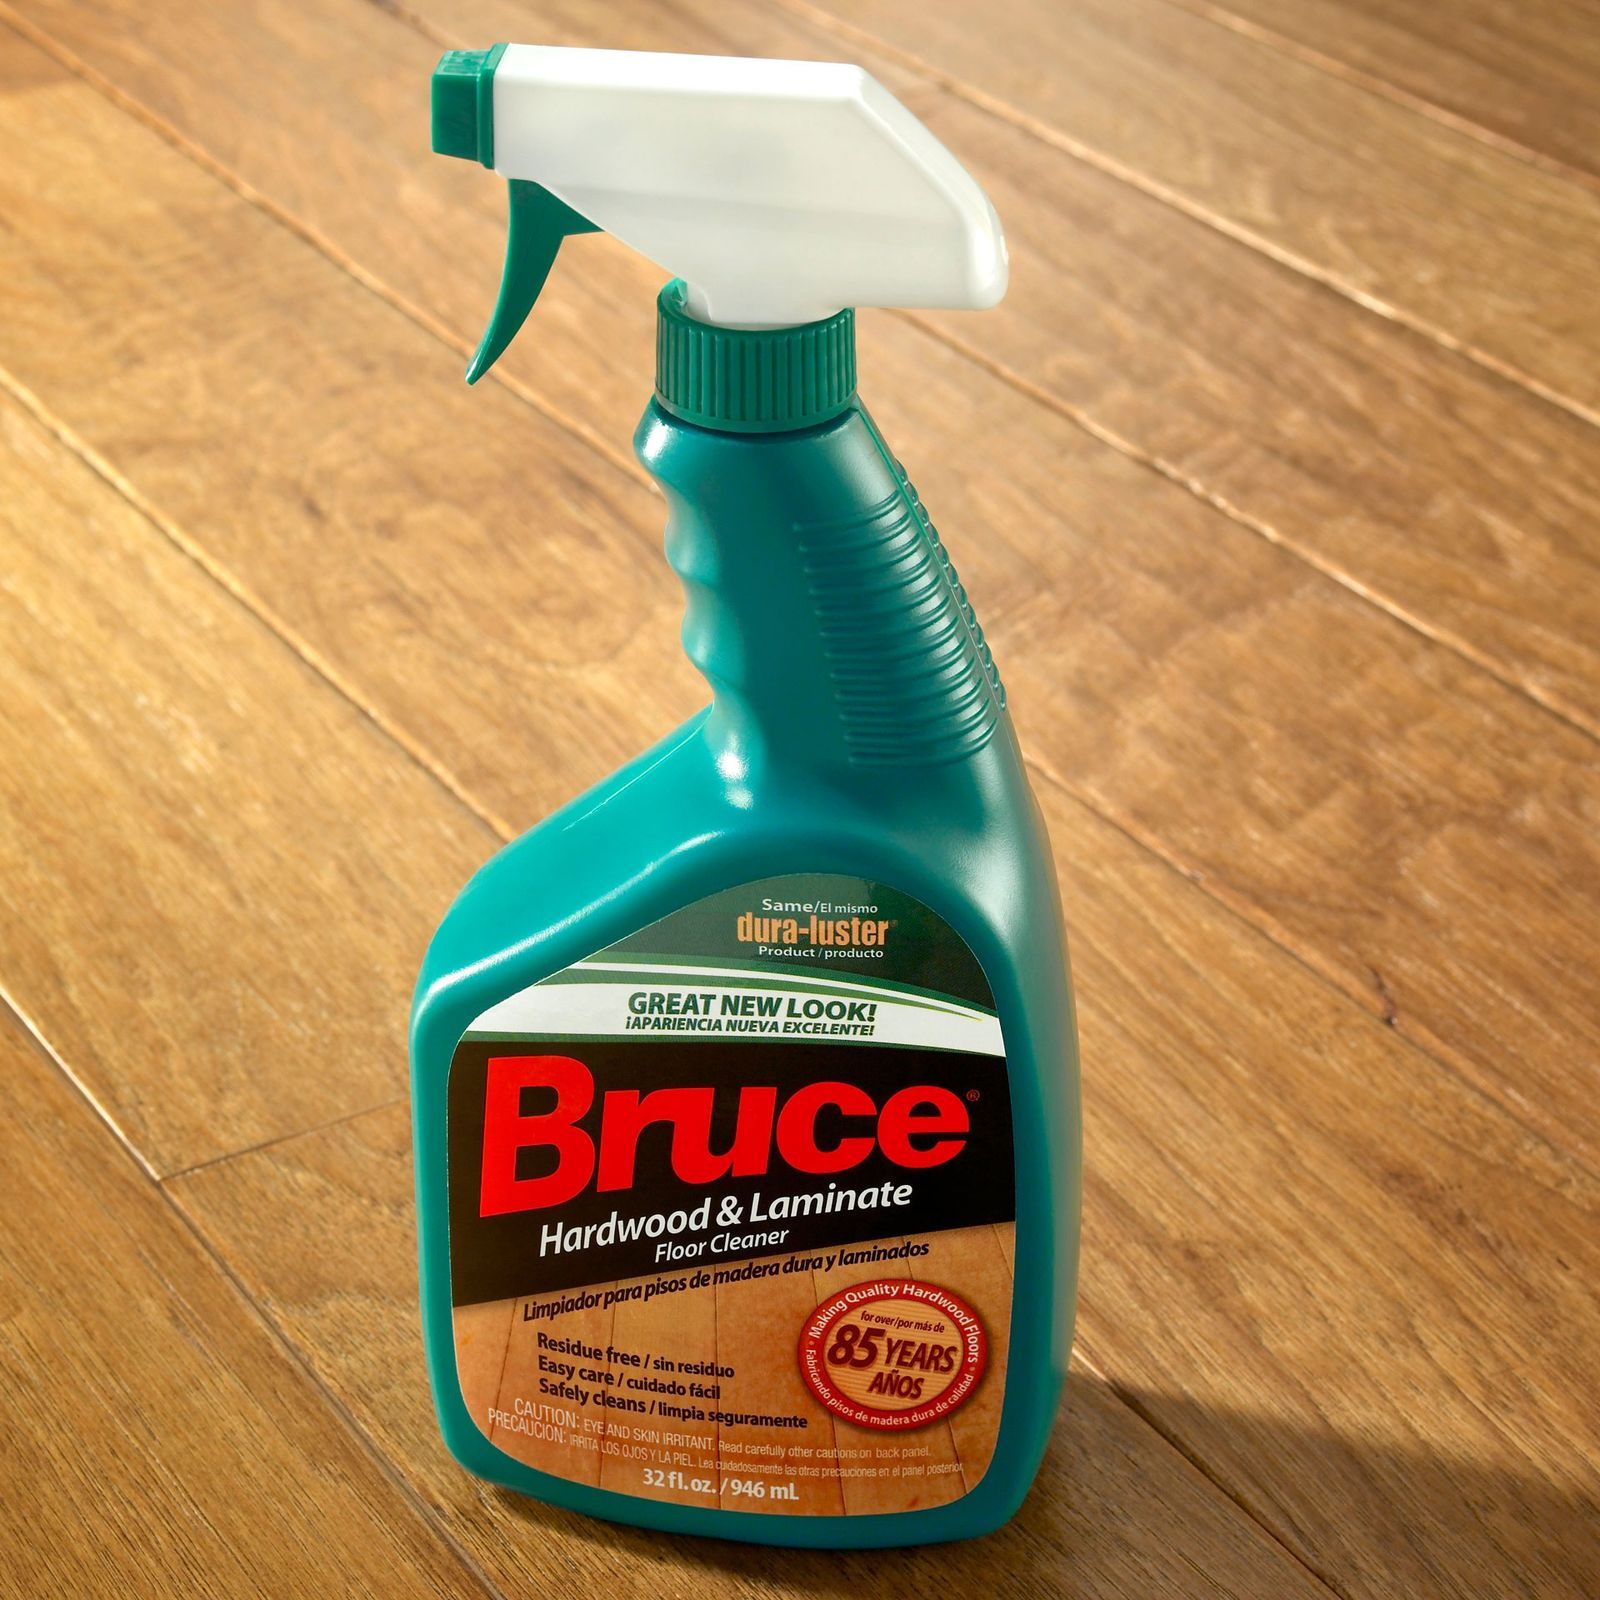 Bruce Hardwood and Laminate Floor Cleaner How to clean